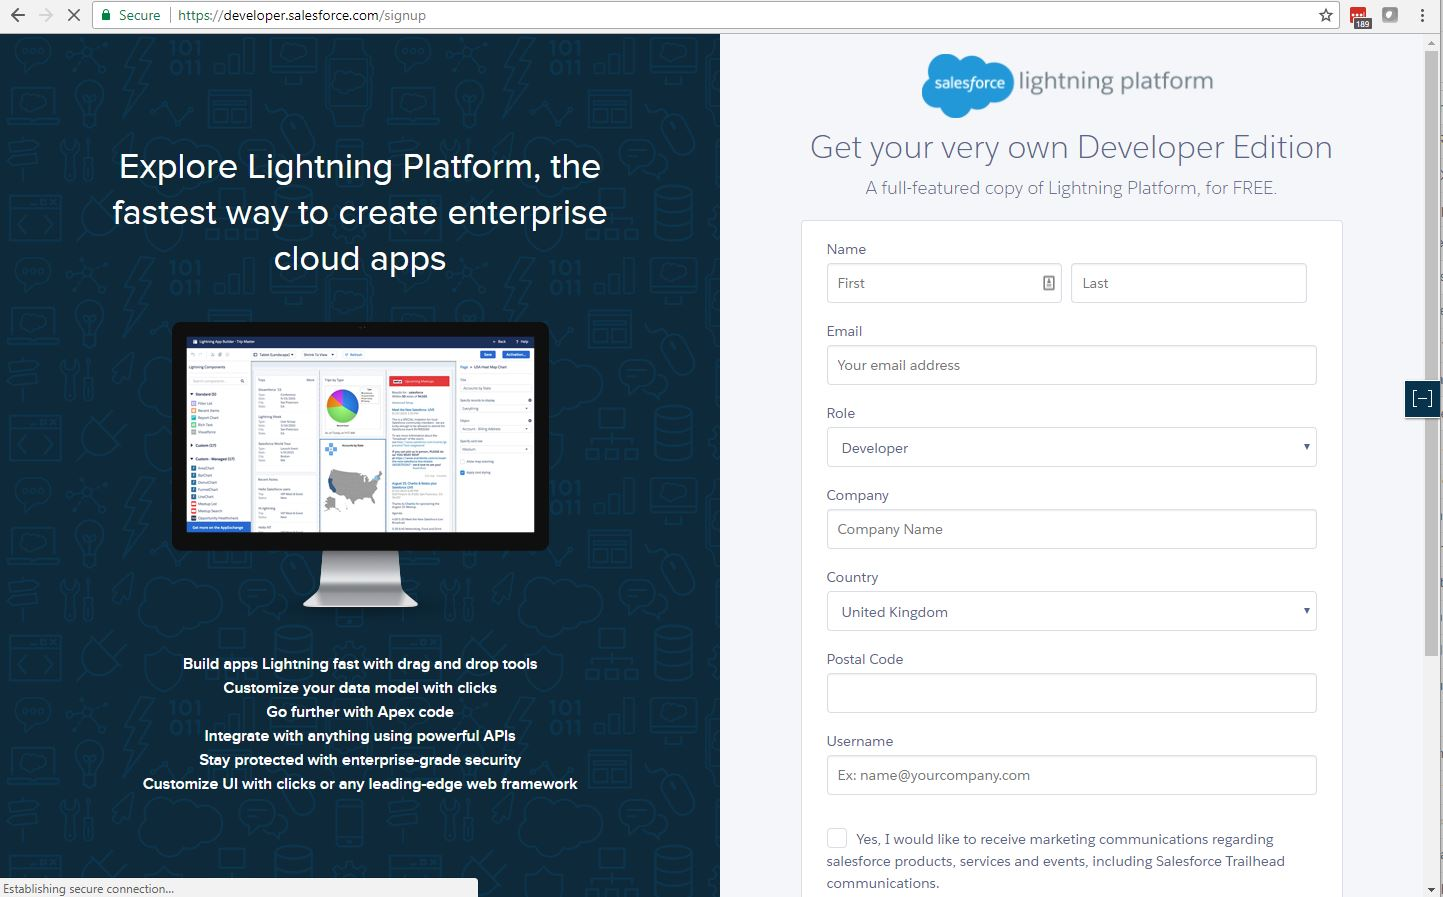 The Simon Lawrence Application Development Blog